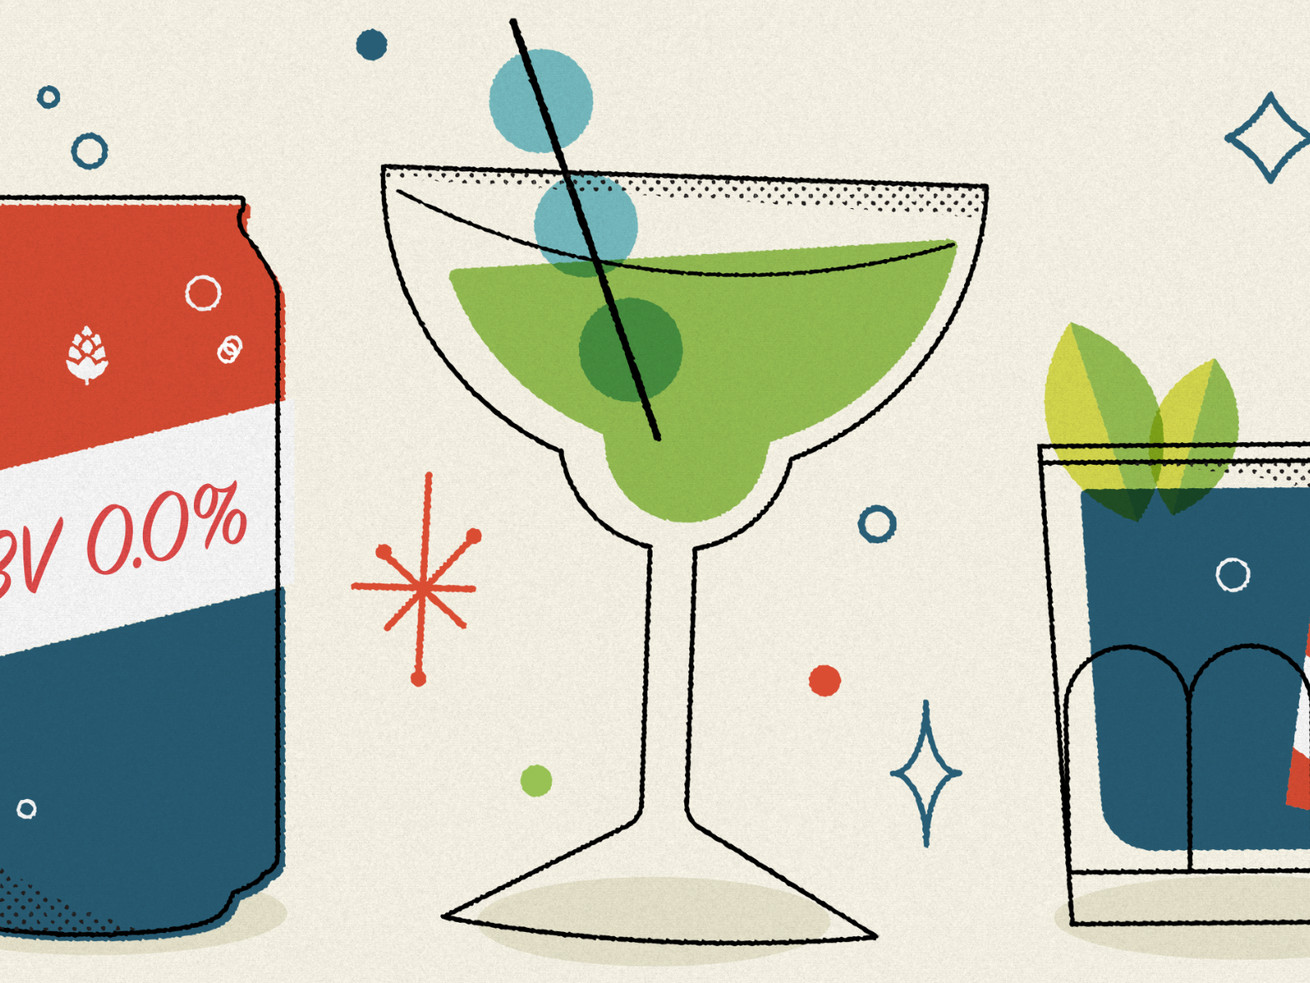 More and more alcohol brands, bars, and restaurants are starting to offer nonalcoholic options.